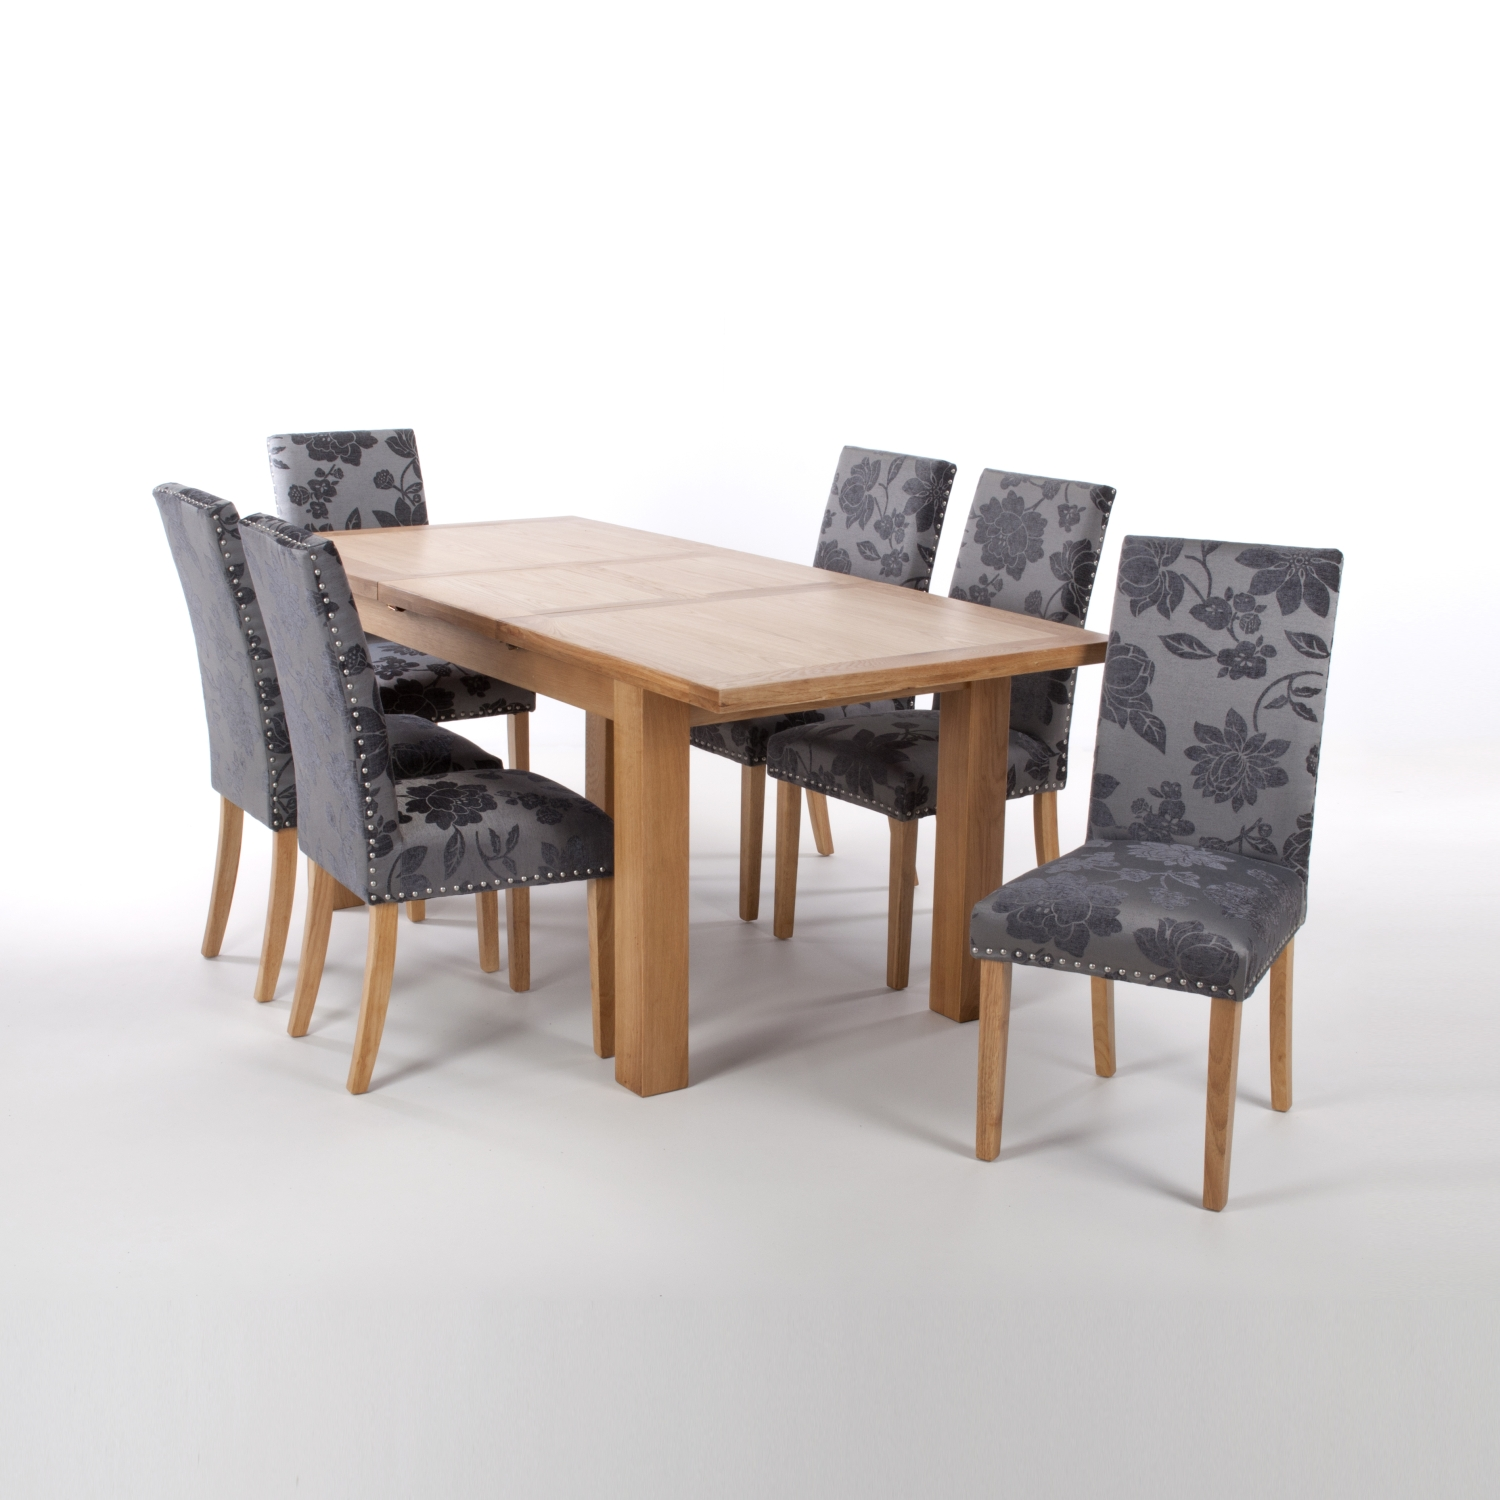 Solid Oak Extendable Dining Table with 8 Stud Detail Chairs in Linen Effect Silver Grey with Natural legs